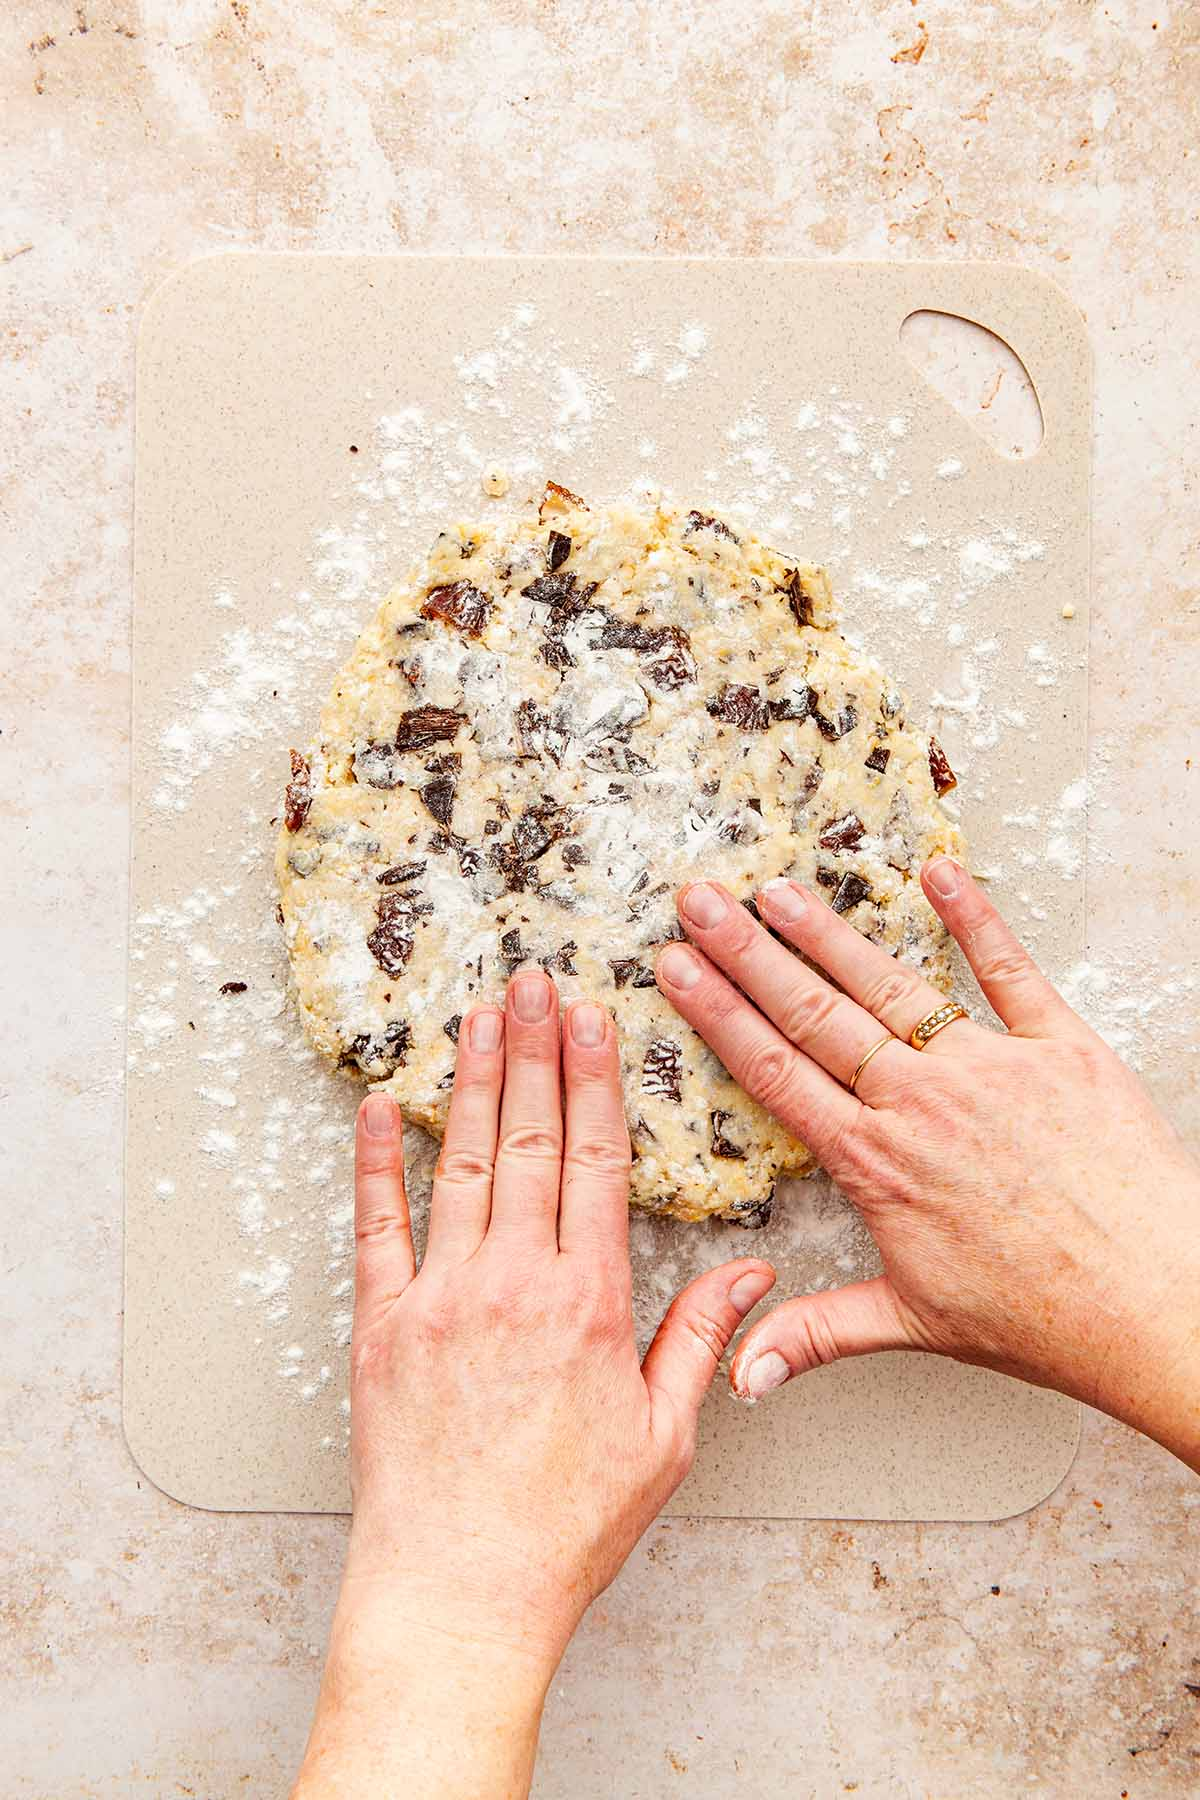 Hands pressing dough into a circle with fingertips.